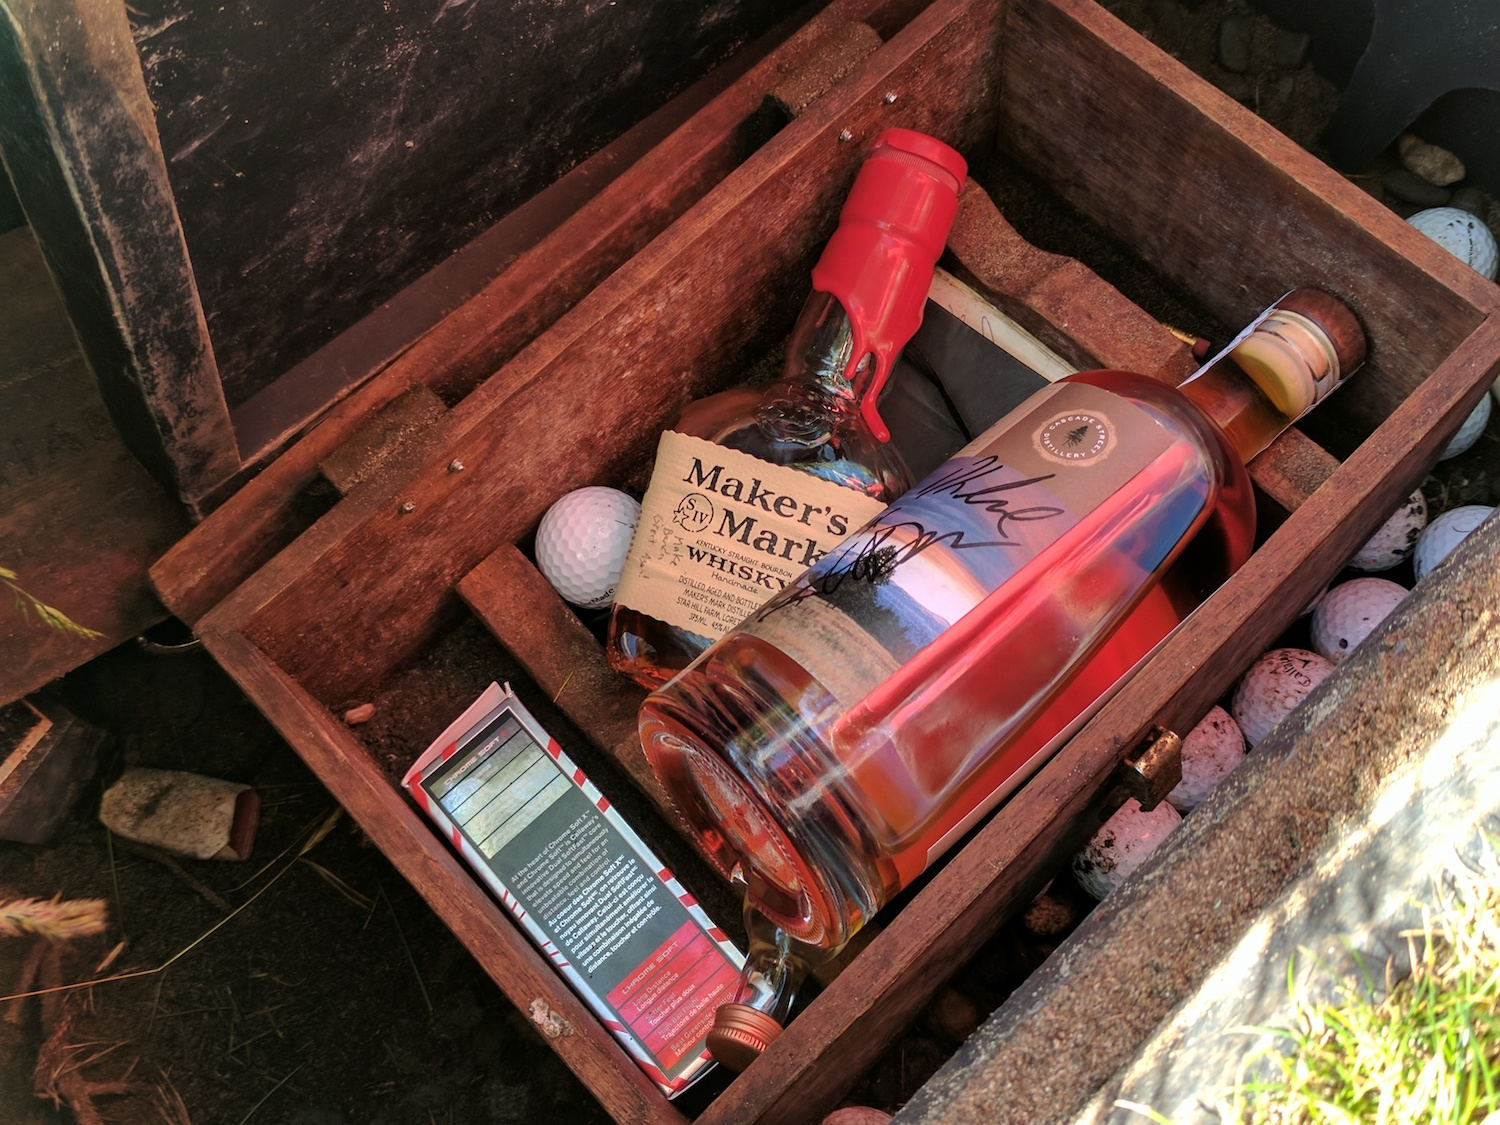 There's one hidden item at Bandon Dunes that many golfers want to find: a box with a couple bottles of whiskey at a certain location on the original course. If you happen upon it, feel free to have a nip. After doing so, it's customary to write your name in the well-worn notebook in the box.